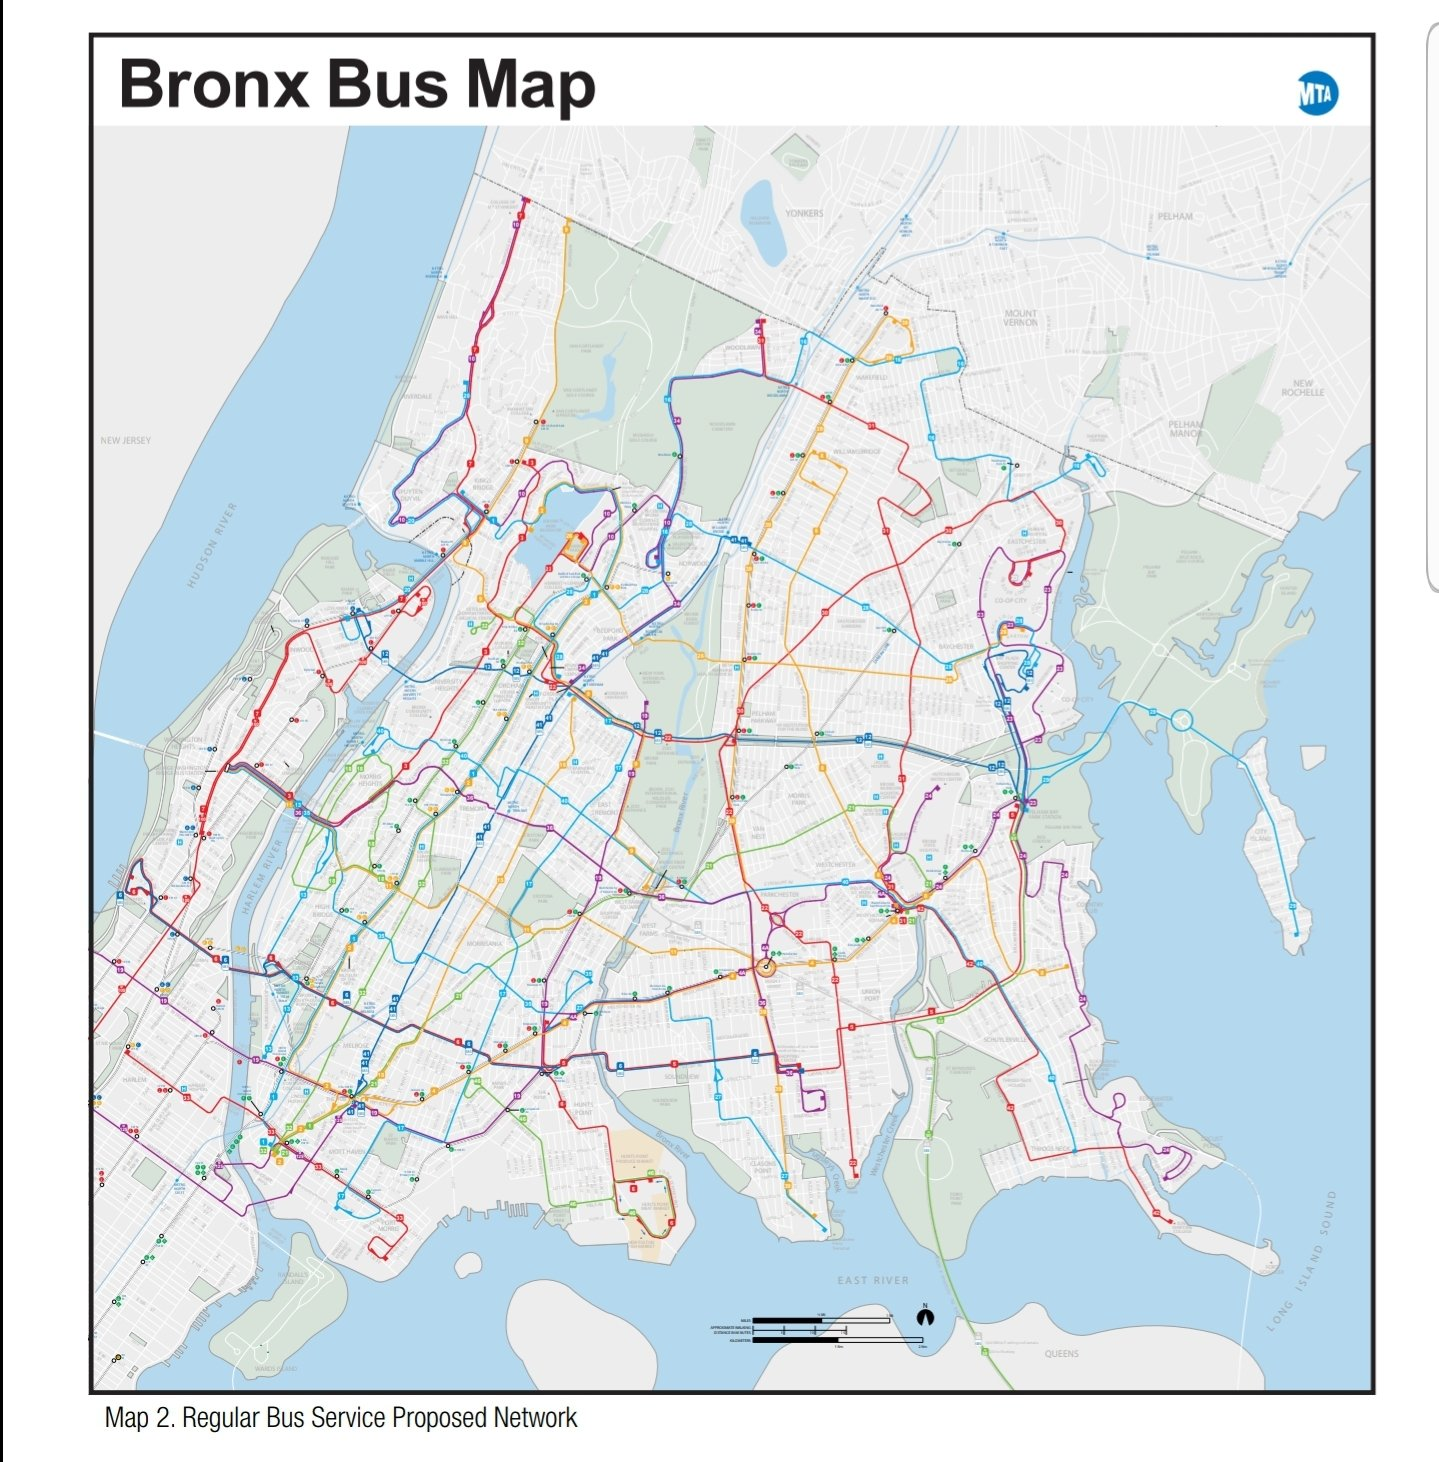 MTA's Bronx Bus Network Redesign to Bring Big Changes for ... on q33 bus route, q11 bus route, q3 bus route, q28 bus route, q25 bus route, q44 bus route, q83 bus route, q22 bus route, q30 bus route, q53 bus route, q12 bus route, q65 bus route, q55 bus route, q58 bus route, q17 bus route, q36 bus route, q34 bus route, q43 bus route,